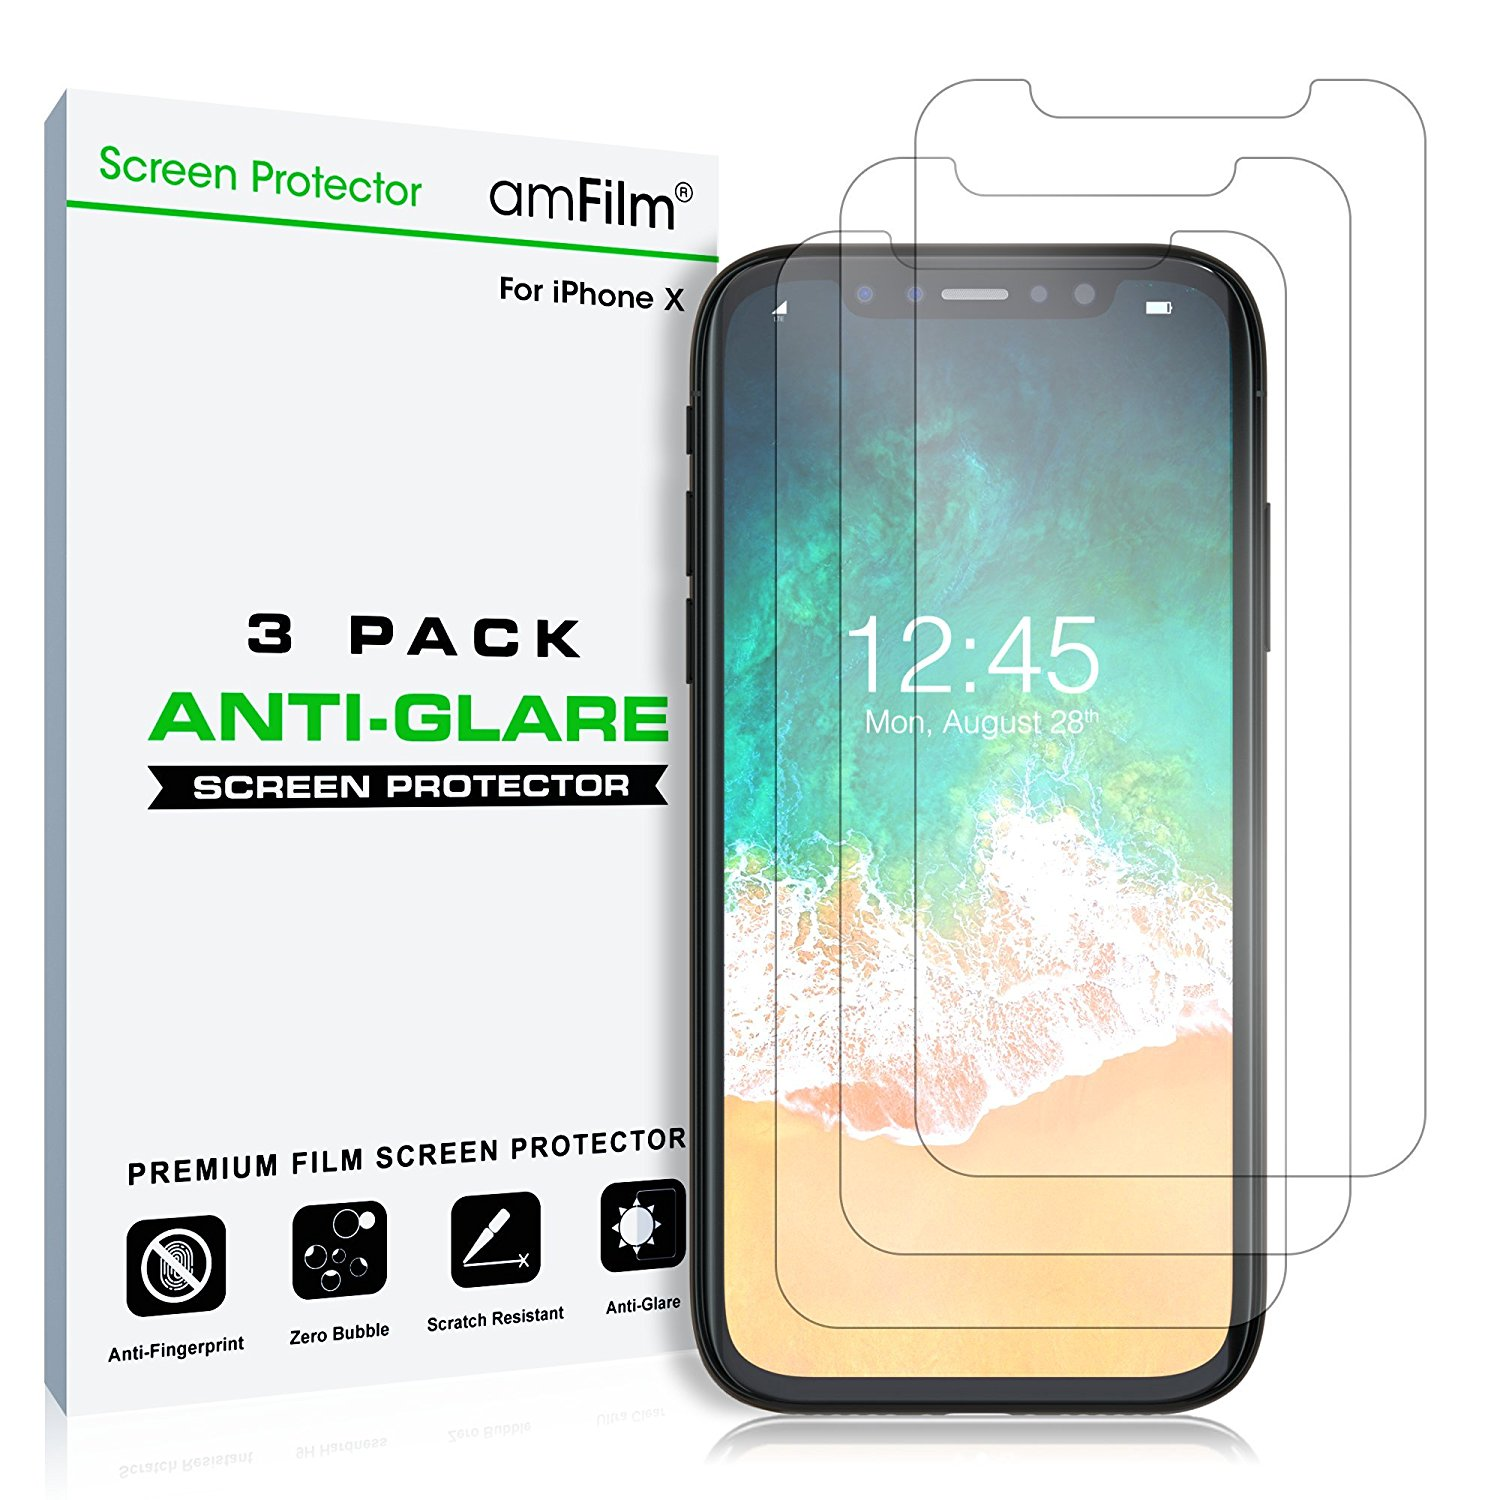 Apple iPhone X amFilm Premium Anti-Glare/Anti-Fingerprint Screen Protector (3 Pack)